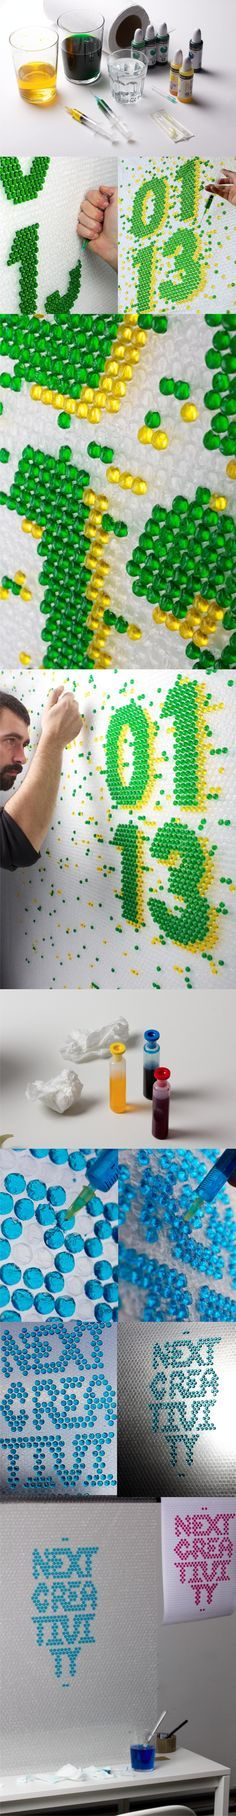 Letters by injecting colored liquid into plastic bubble wrap - losiento.net